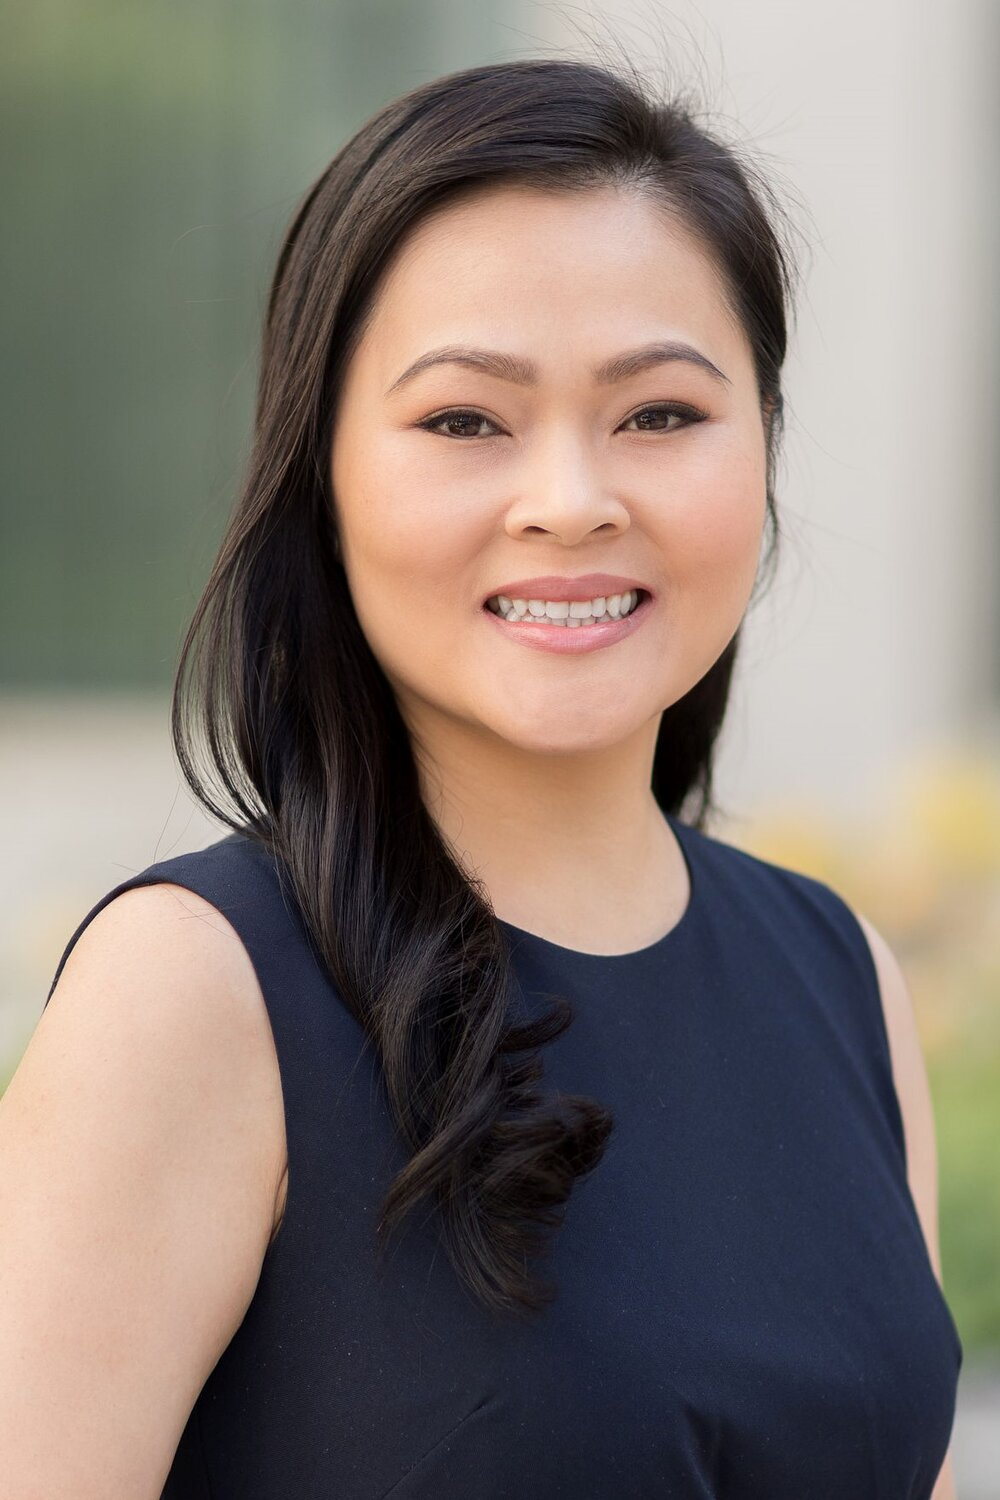 cindy-nguyen-rosemead-estate-planning-attorney-amity-law-group-los-angeles